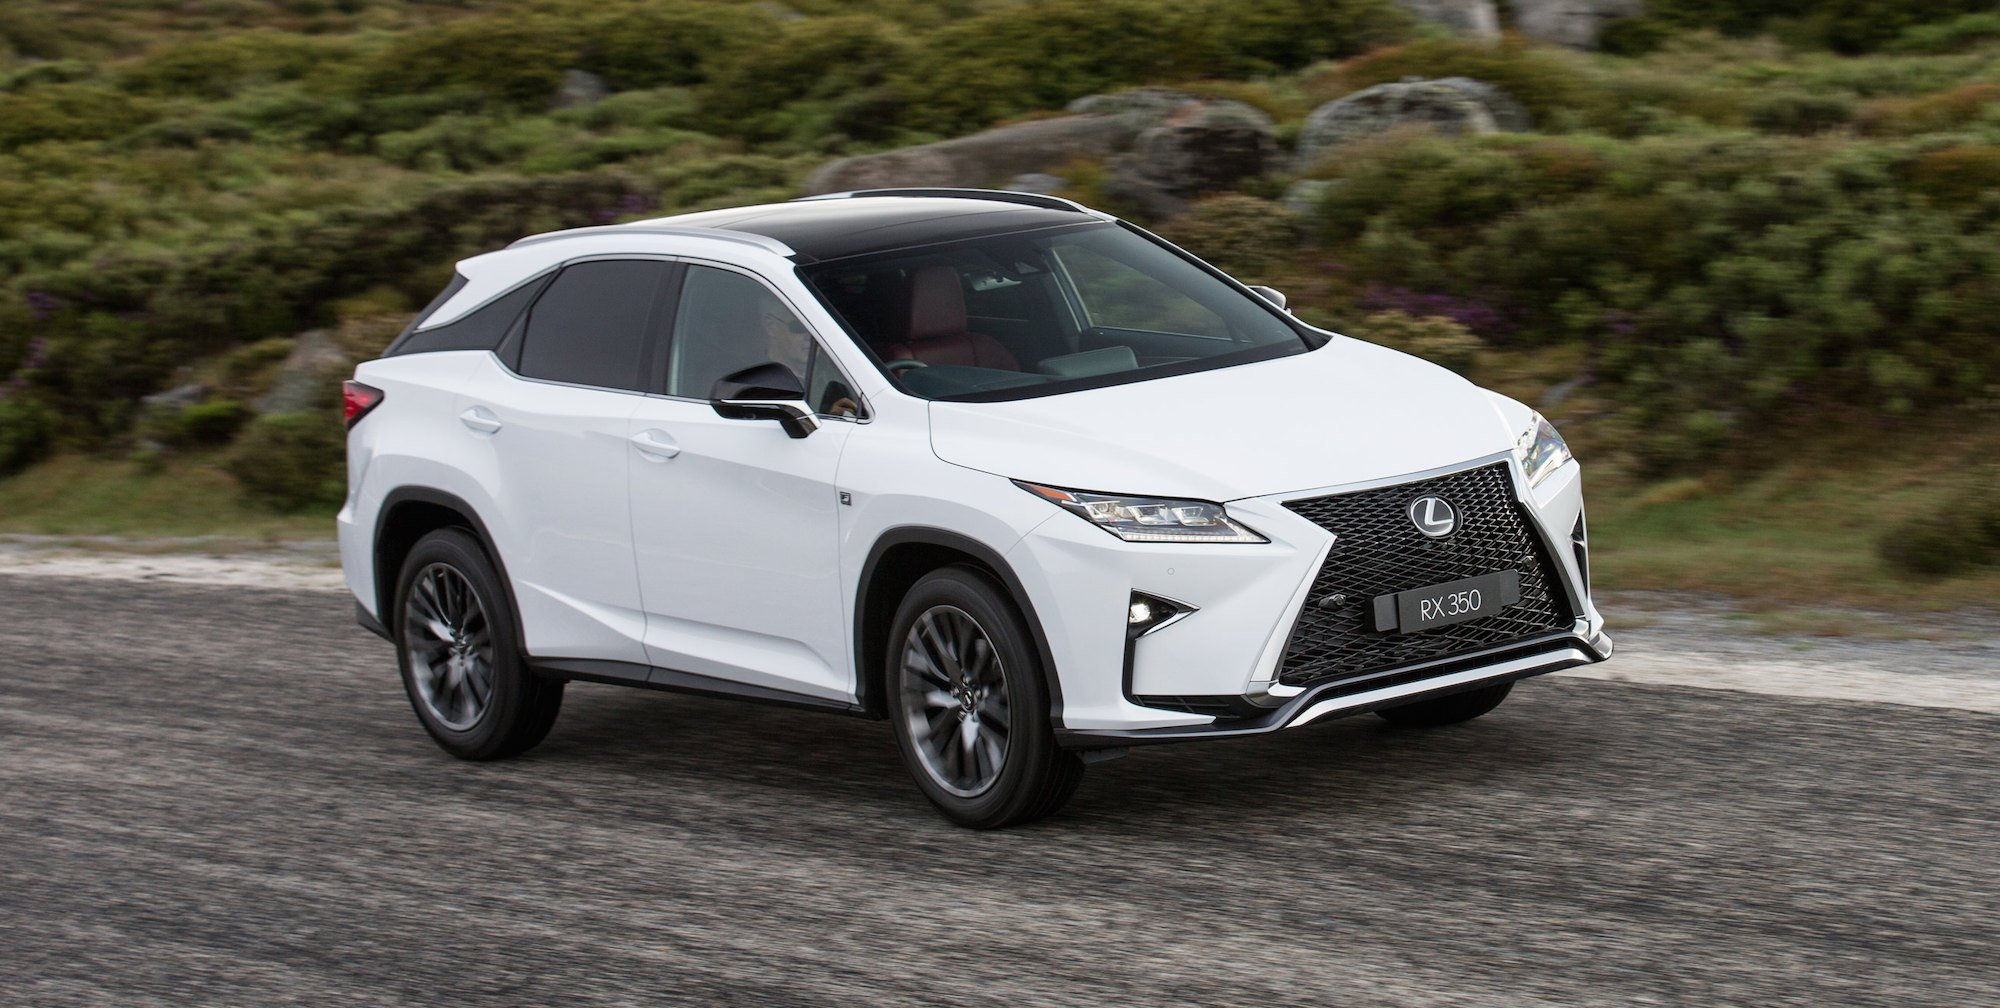 Mazda Cx >> 2016 Lexus RX Review - photos | CarAdvice